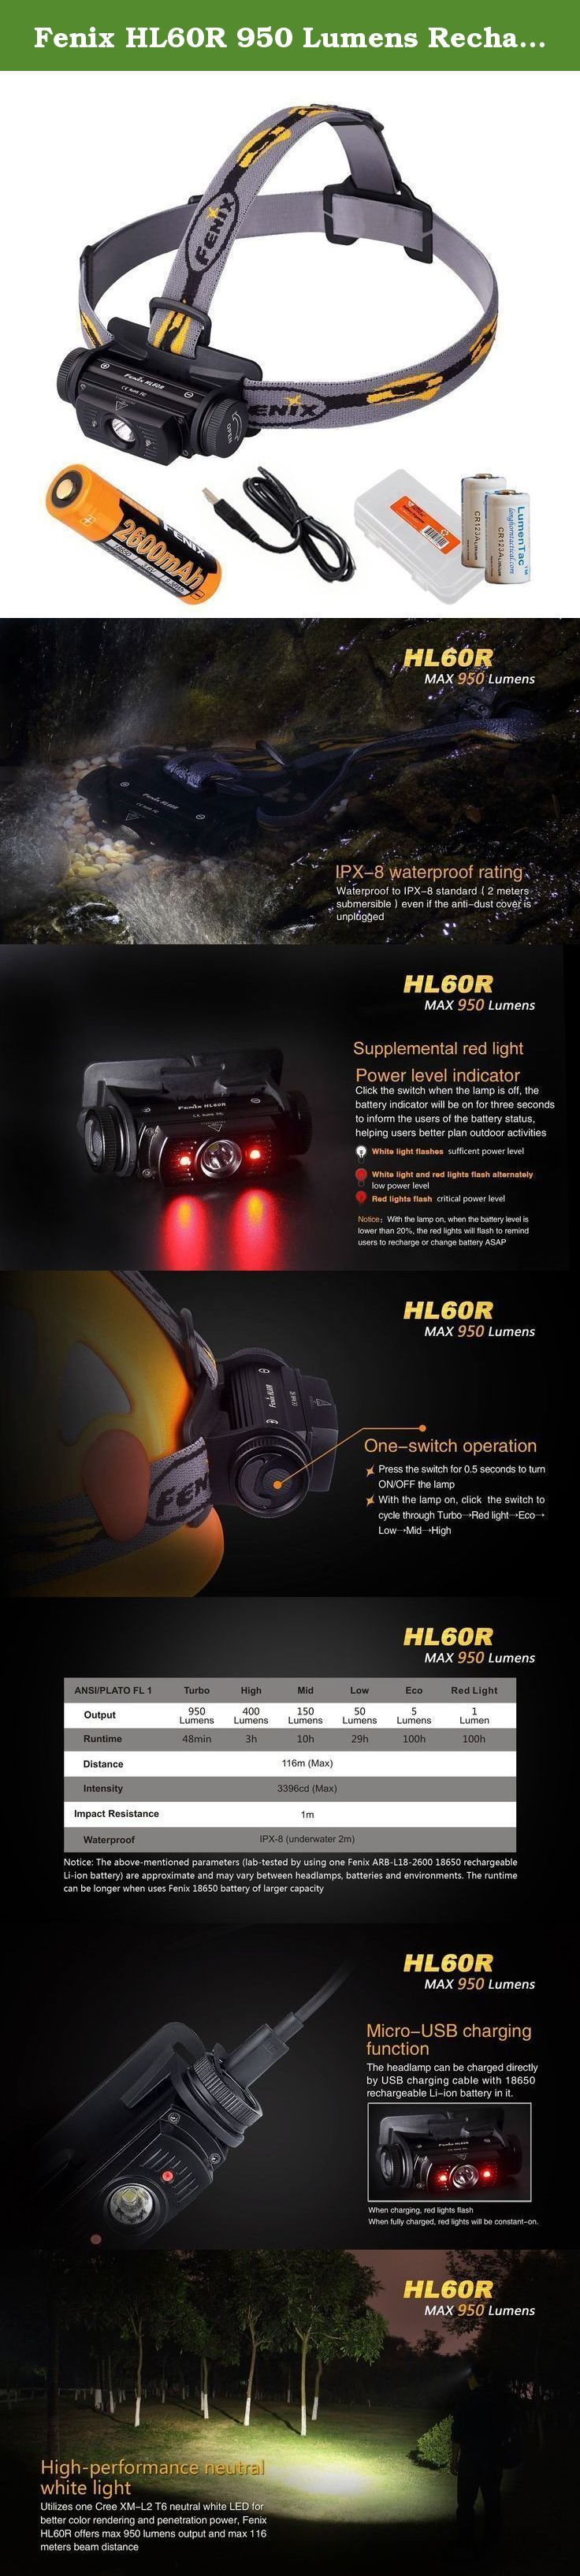 Fenix HL60R 950 Lumens Rechargeable LED Headlamp with Rechargeable 18650 Battery, USB Charging cable and LumenTac Organizer and Backup CR123As. The HL60R headlamp is the first USB rechargeable light in Fenix's HL Series. Operating off of one 18650 battery or two CR123A batteries, this light can stay in Turbo mode for nearly an hour and in Eco mode for over 100 hours. The Cree XM-L2 T6 neutral white LED bulb means superior definition and penetration in high-humidity environments. A 127…